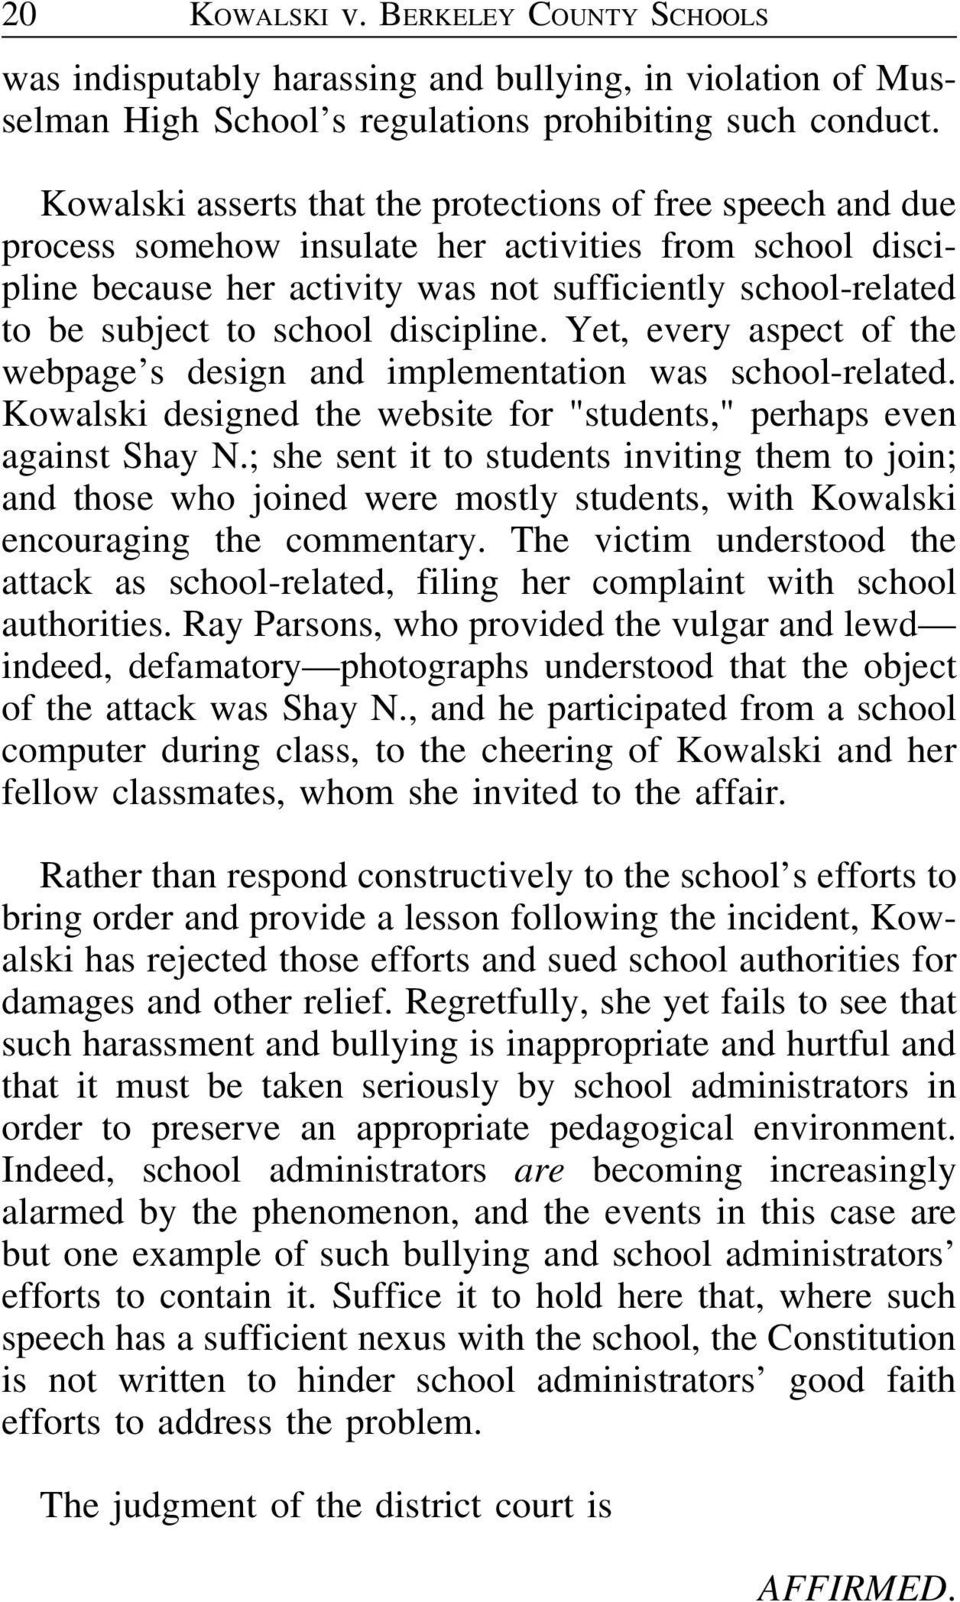 "school discipline. Yet, every aspect of the webpage s design and implementation was school-related. Kowalski designed the website for ""students,"" perhaps even against Shay N."